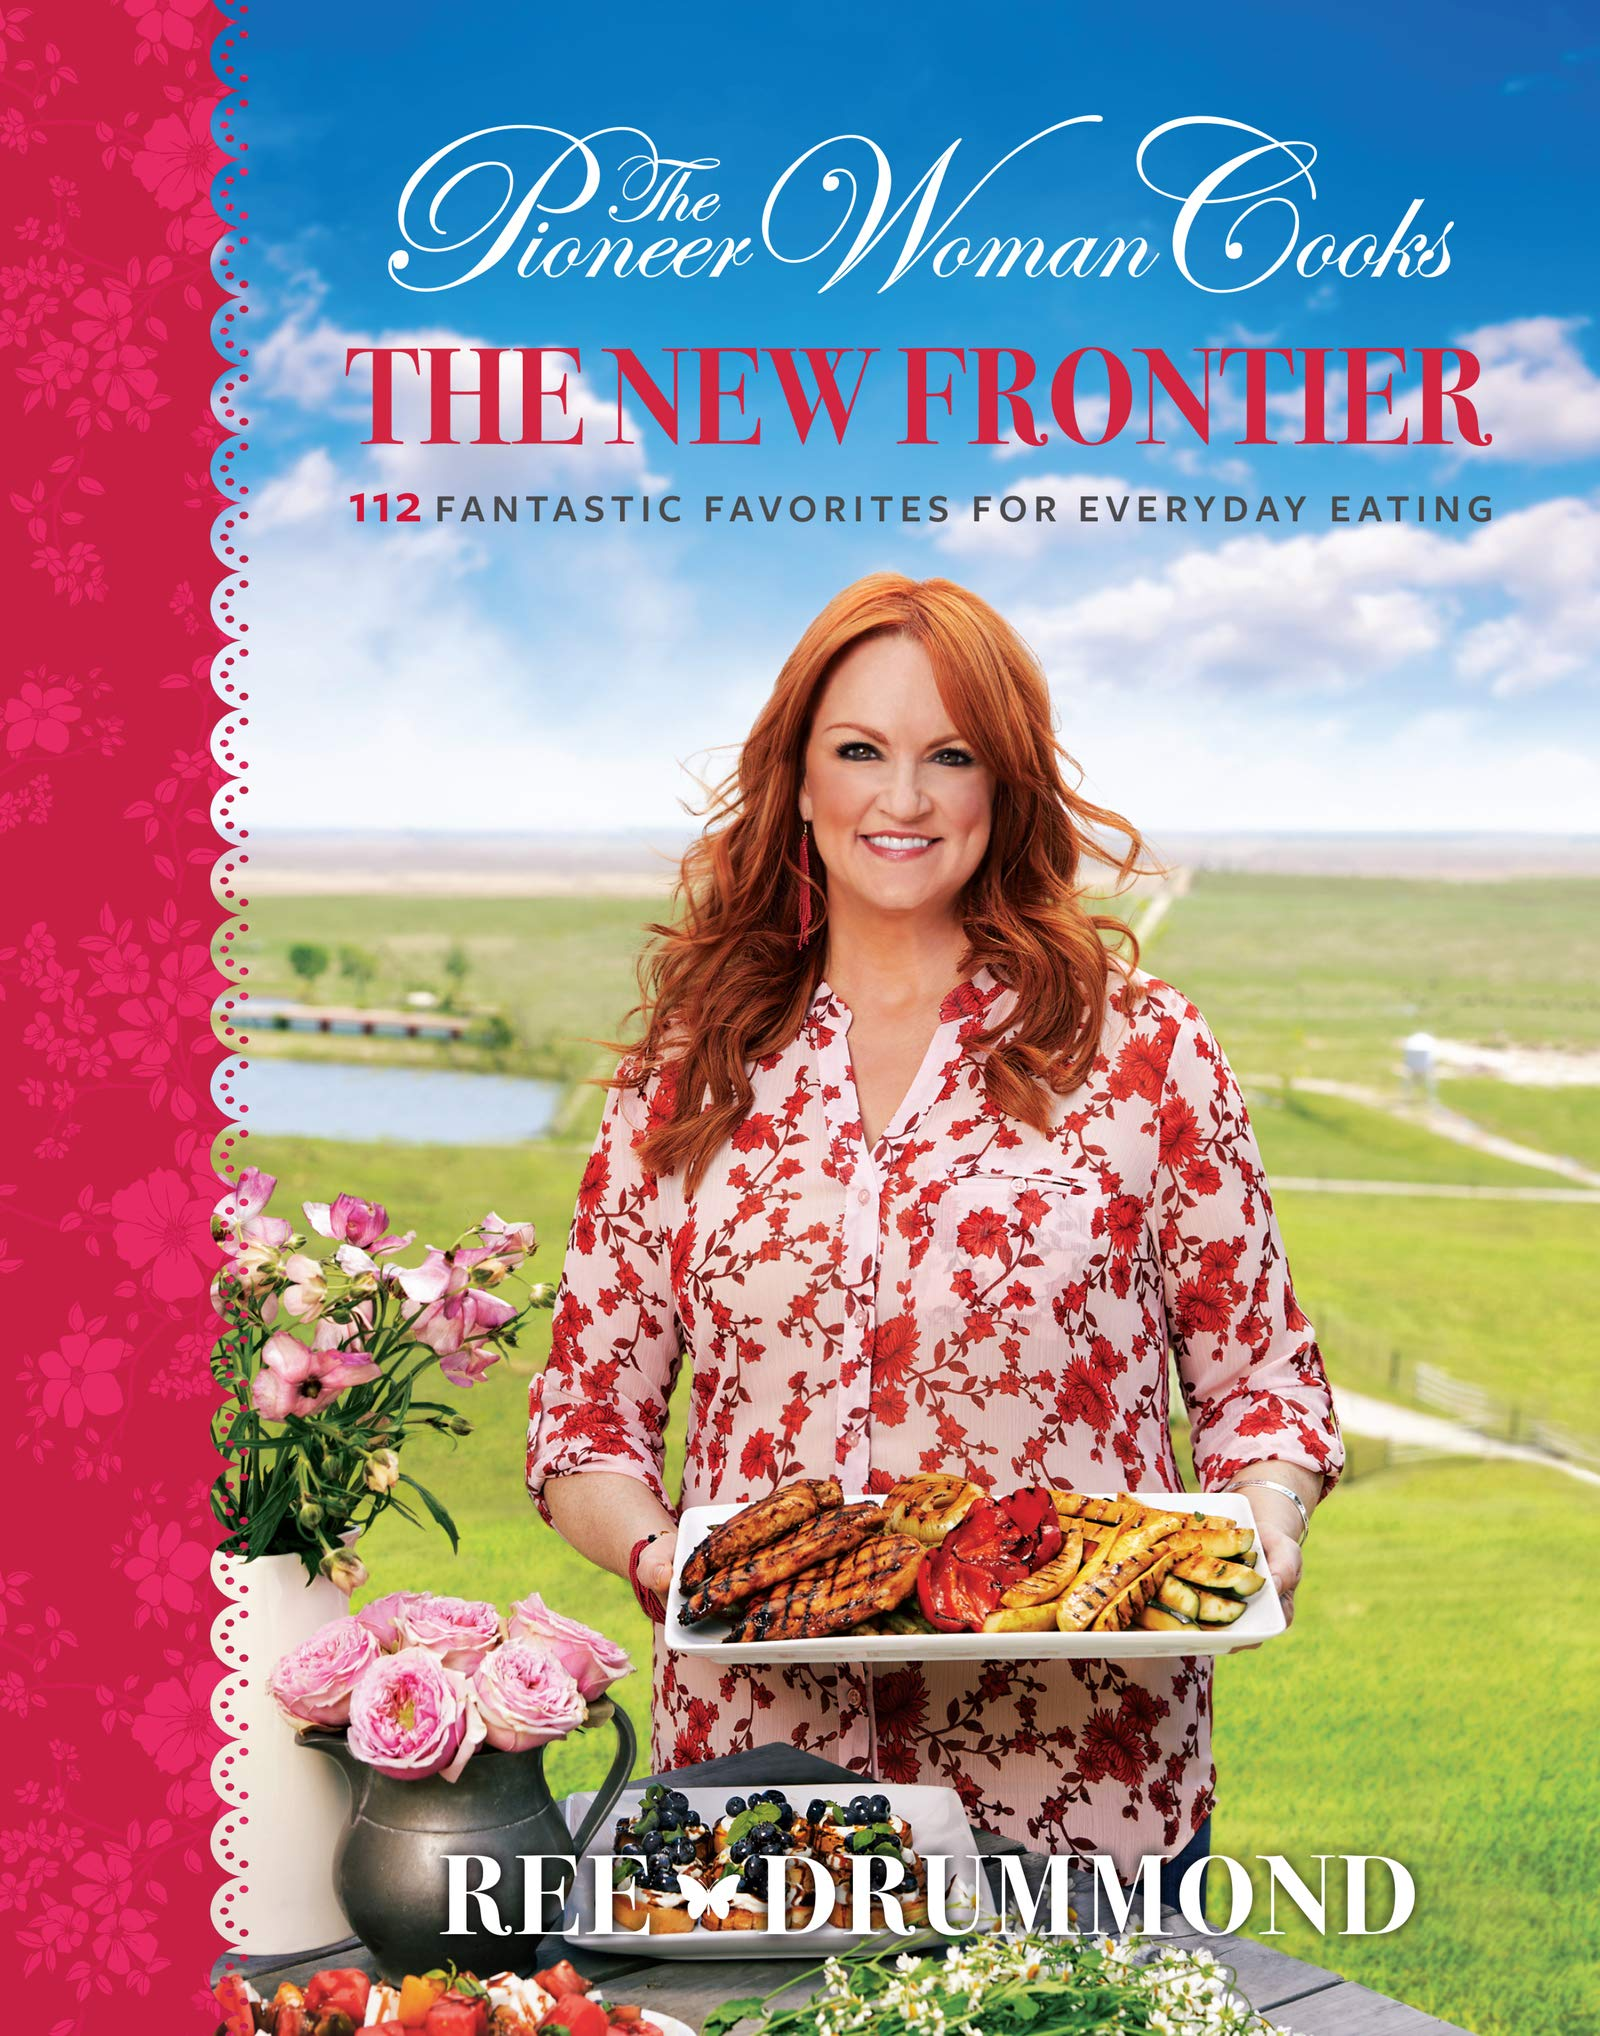 The Pioneer Woman Cooks: The New Frontier: 112 Fantastic Favorites for Everyday Eating by AMERICAN WEST BOOKS